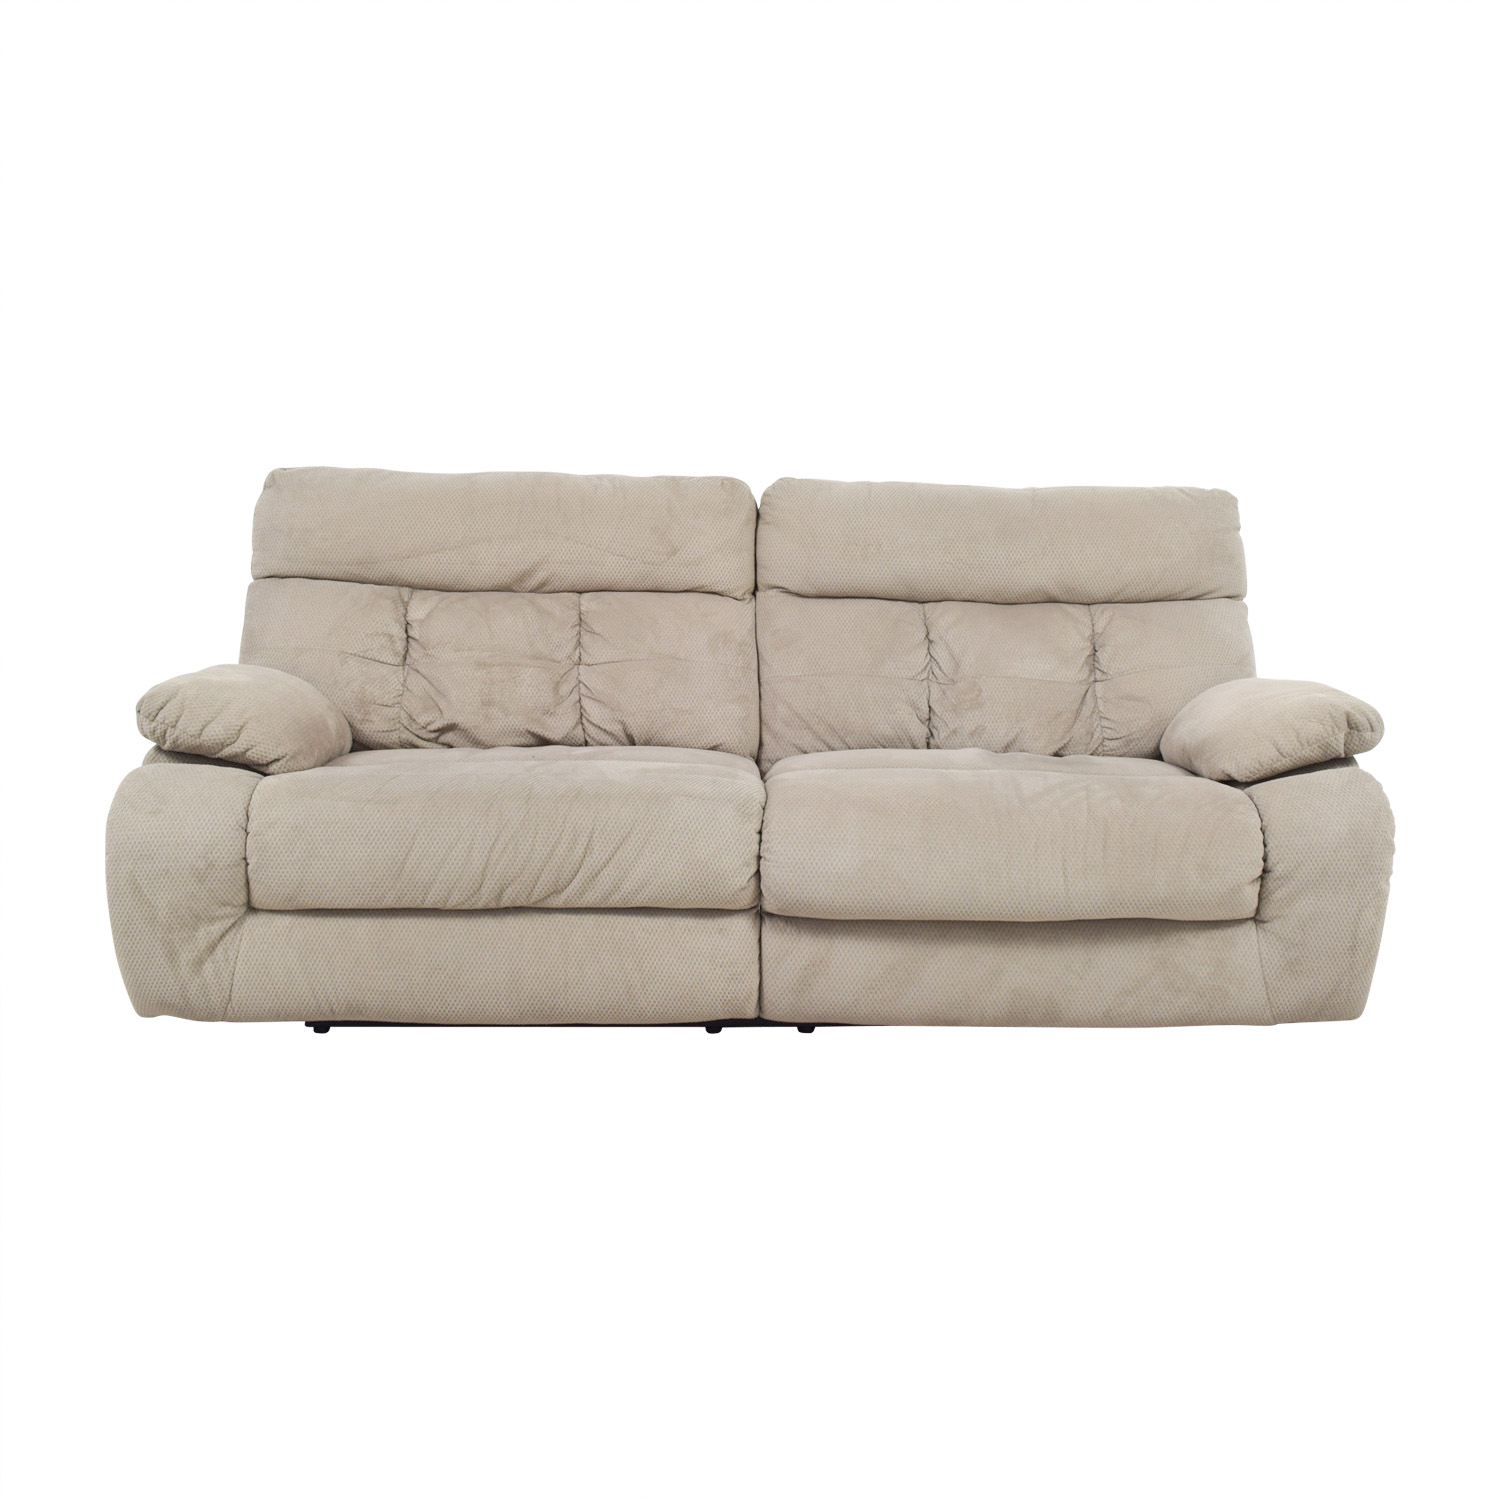 Genial Ashley Furniture Ashley Furniture Beige Reclining Sofa Chairs